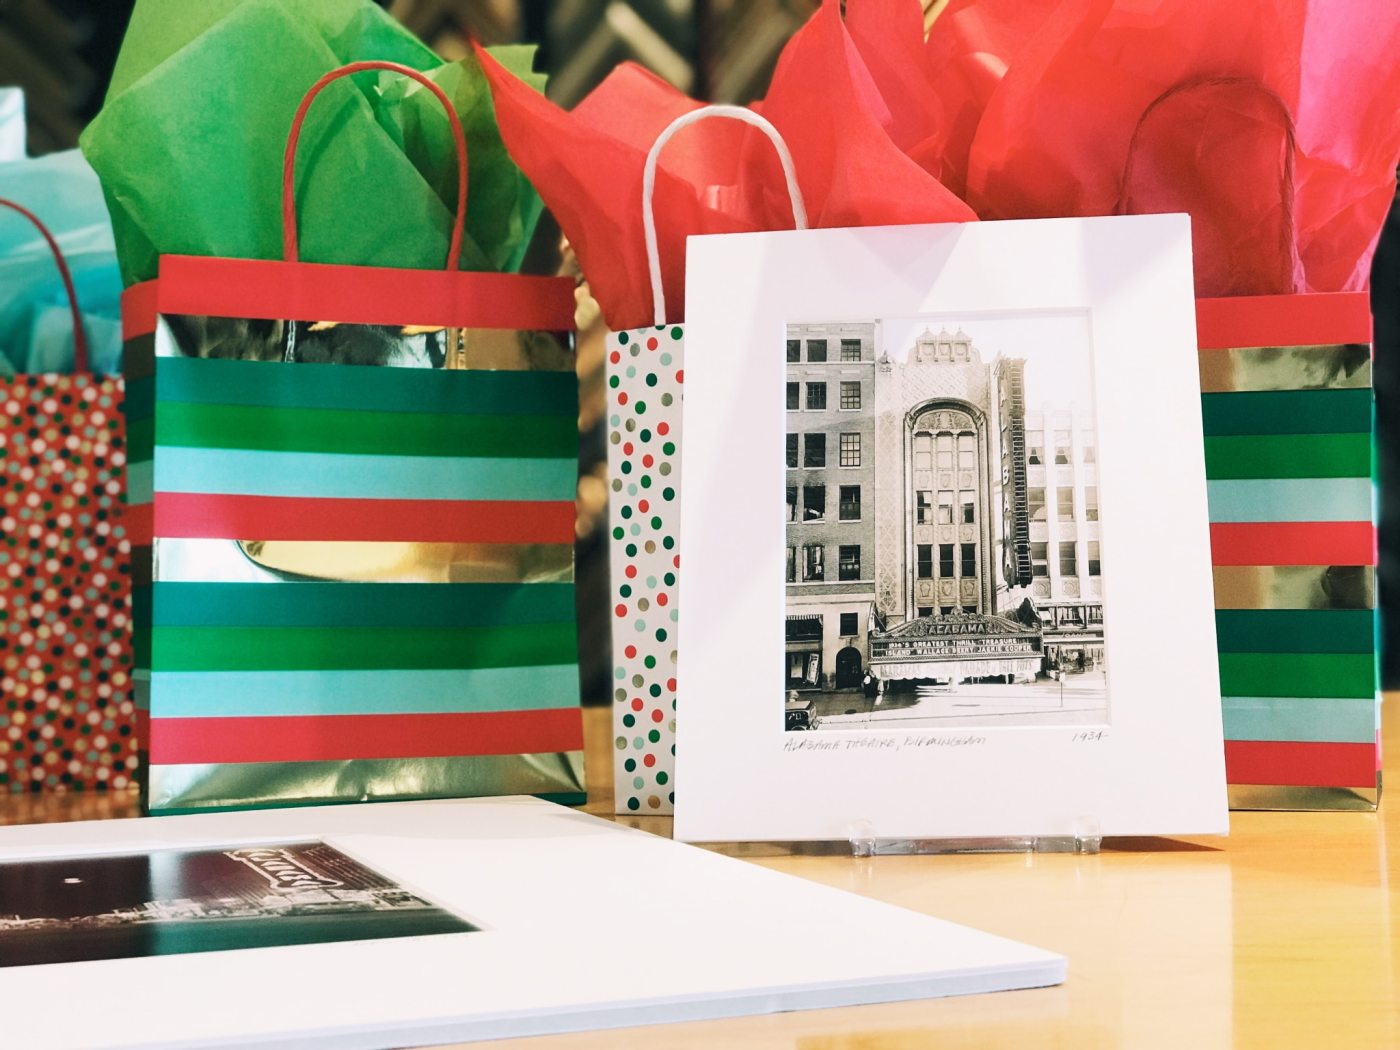 Restored documents and historic photos packaged and ready for the holiday season.